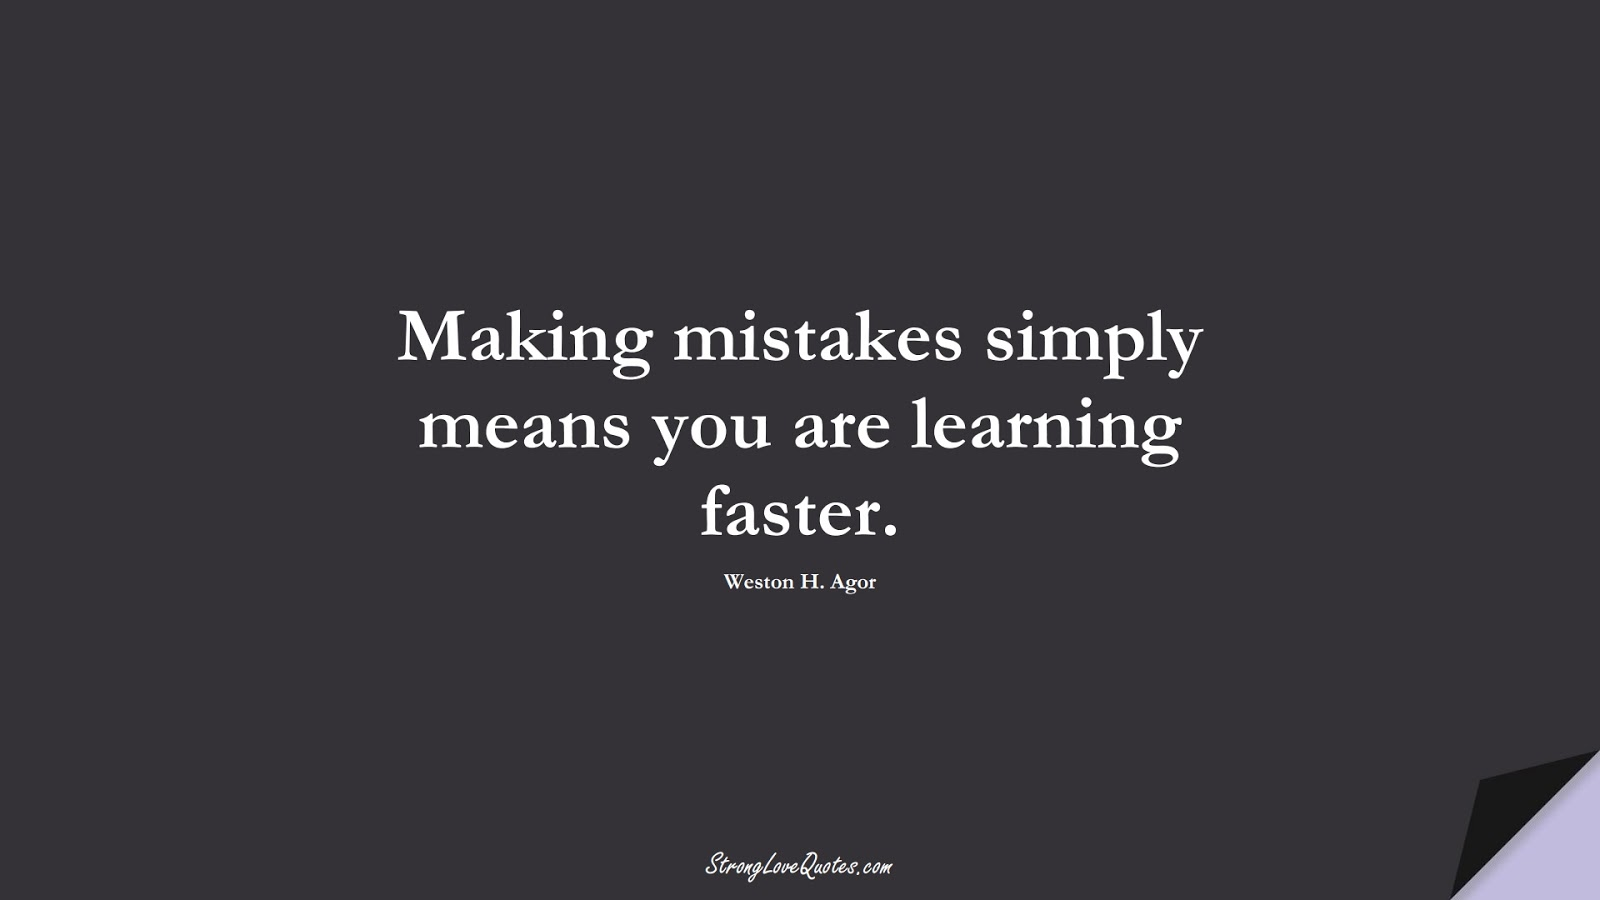 Making mistakes simply means you are learning faster. (Weston H. Agor);  #LearningQuotes